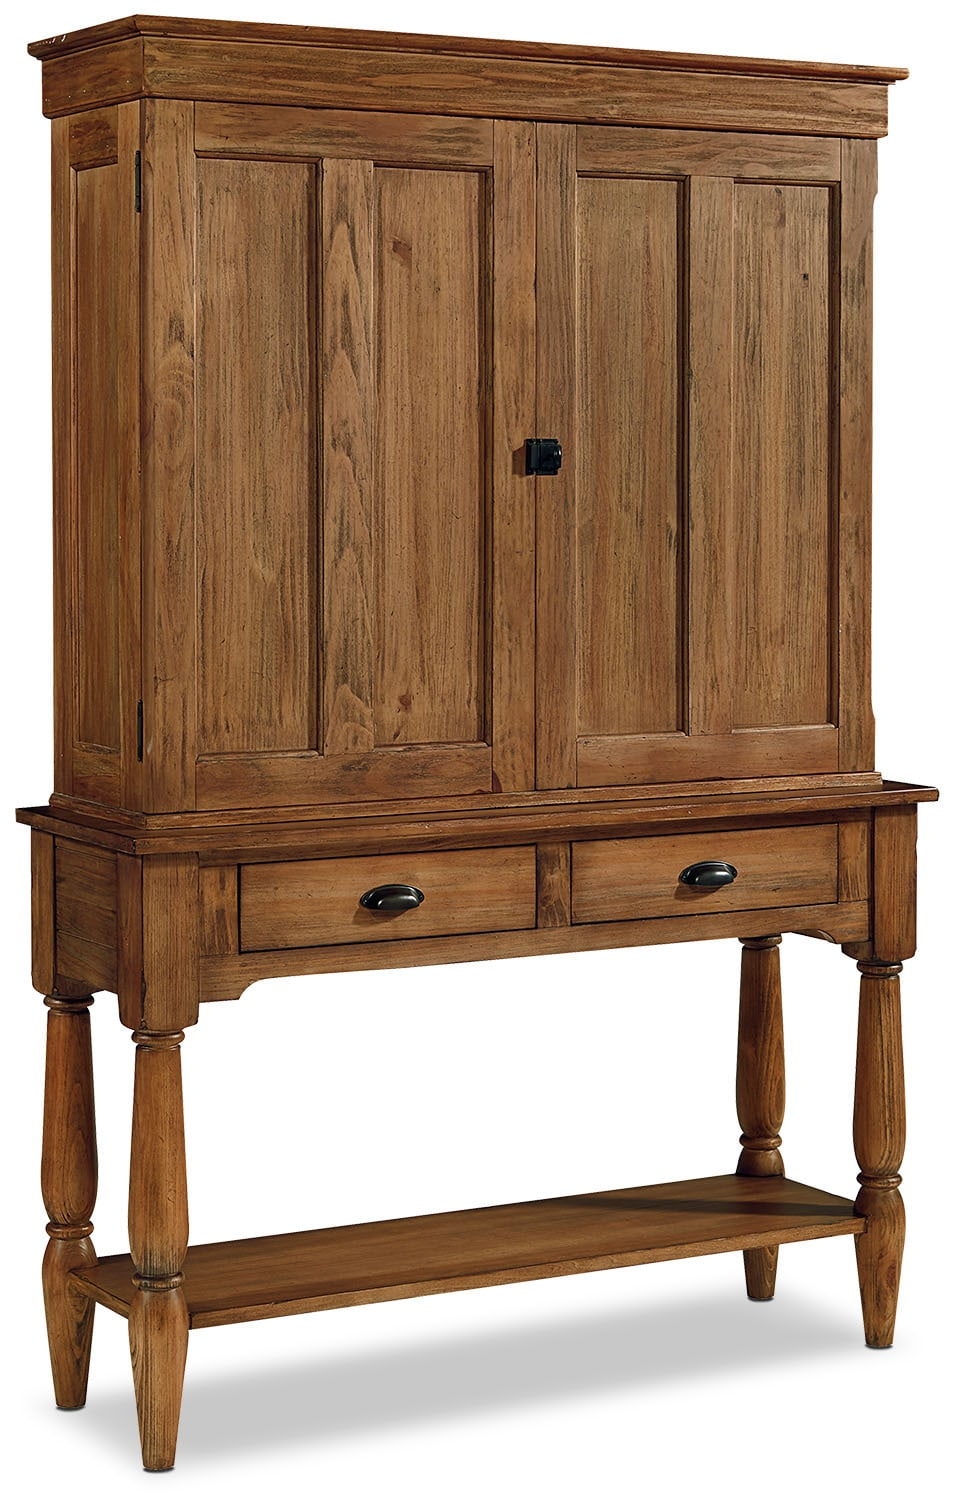 Shop Primitive Furniture Magnolia Home Value City Furniture